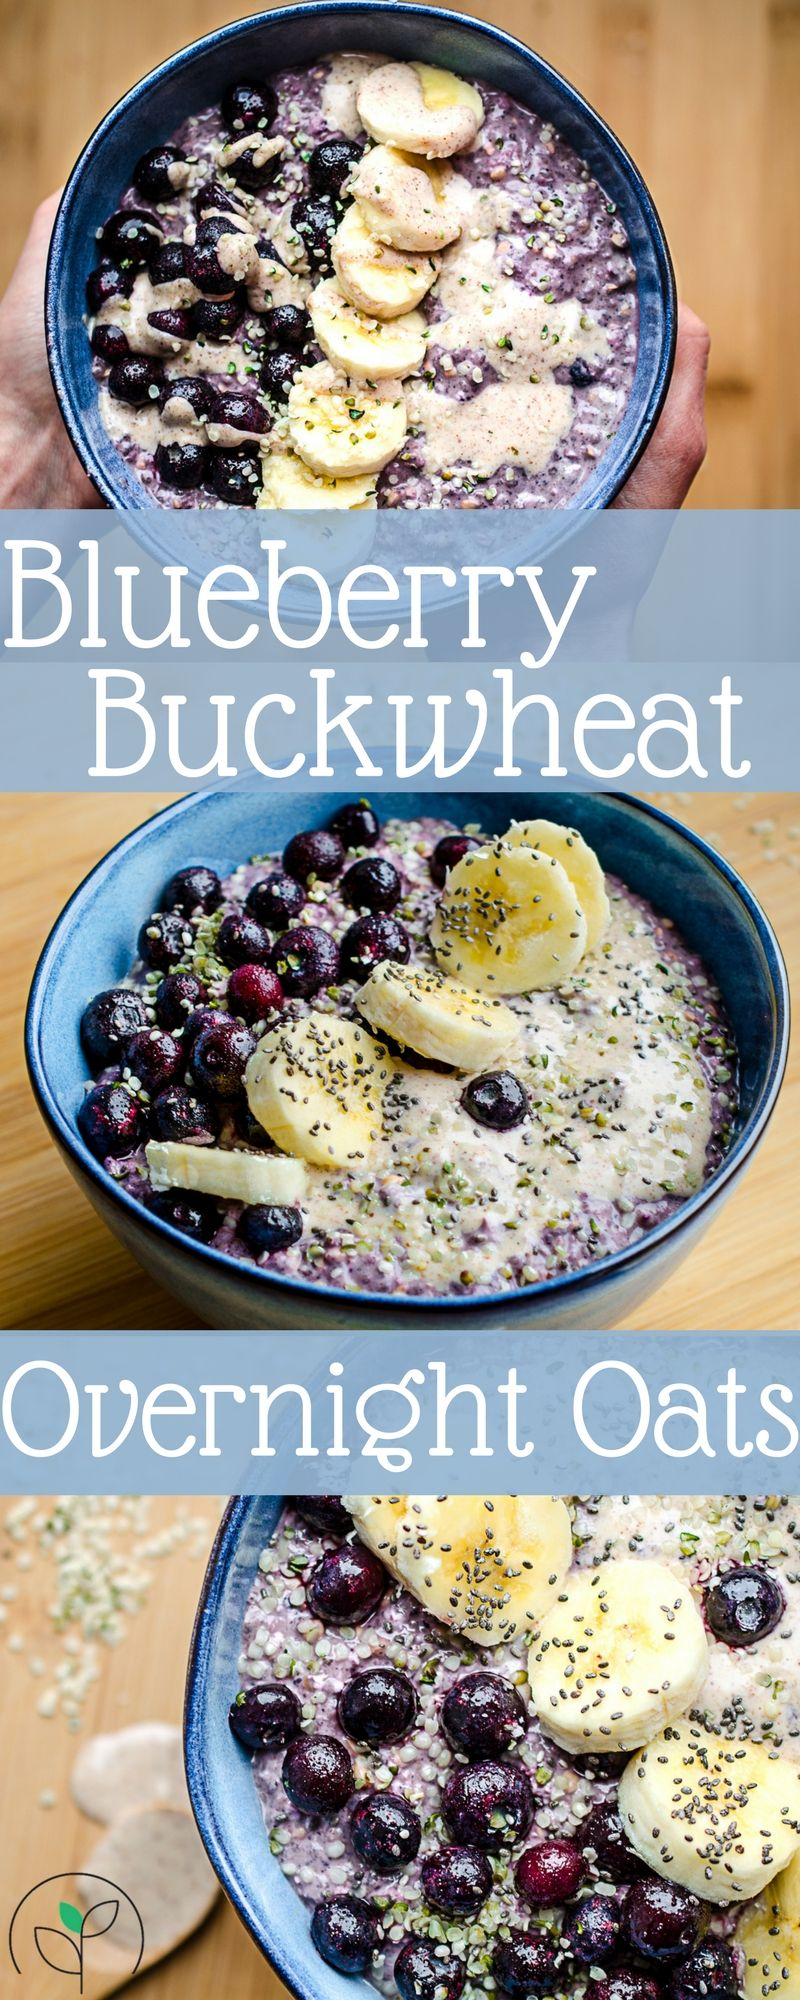 Recipe for buckwheat diet for two weeks